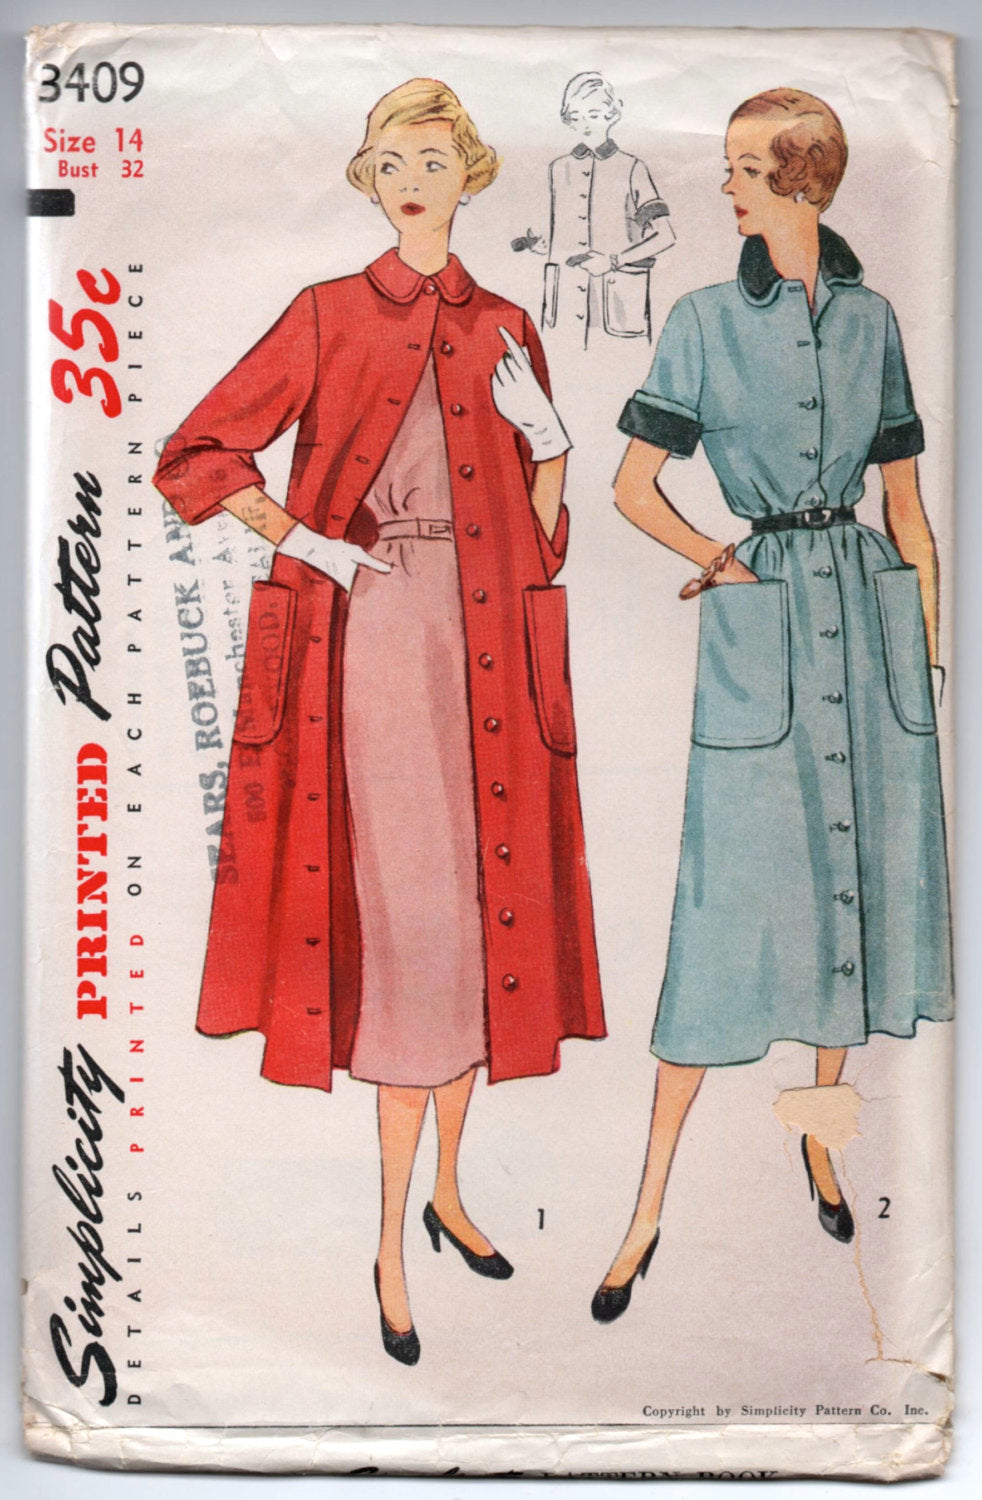 1950's Coat Dress and Duster Pattern by Simplicity - UC/FF - Bust 32